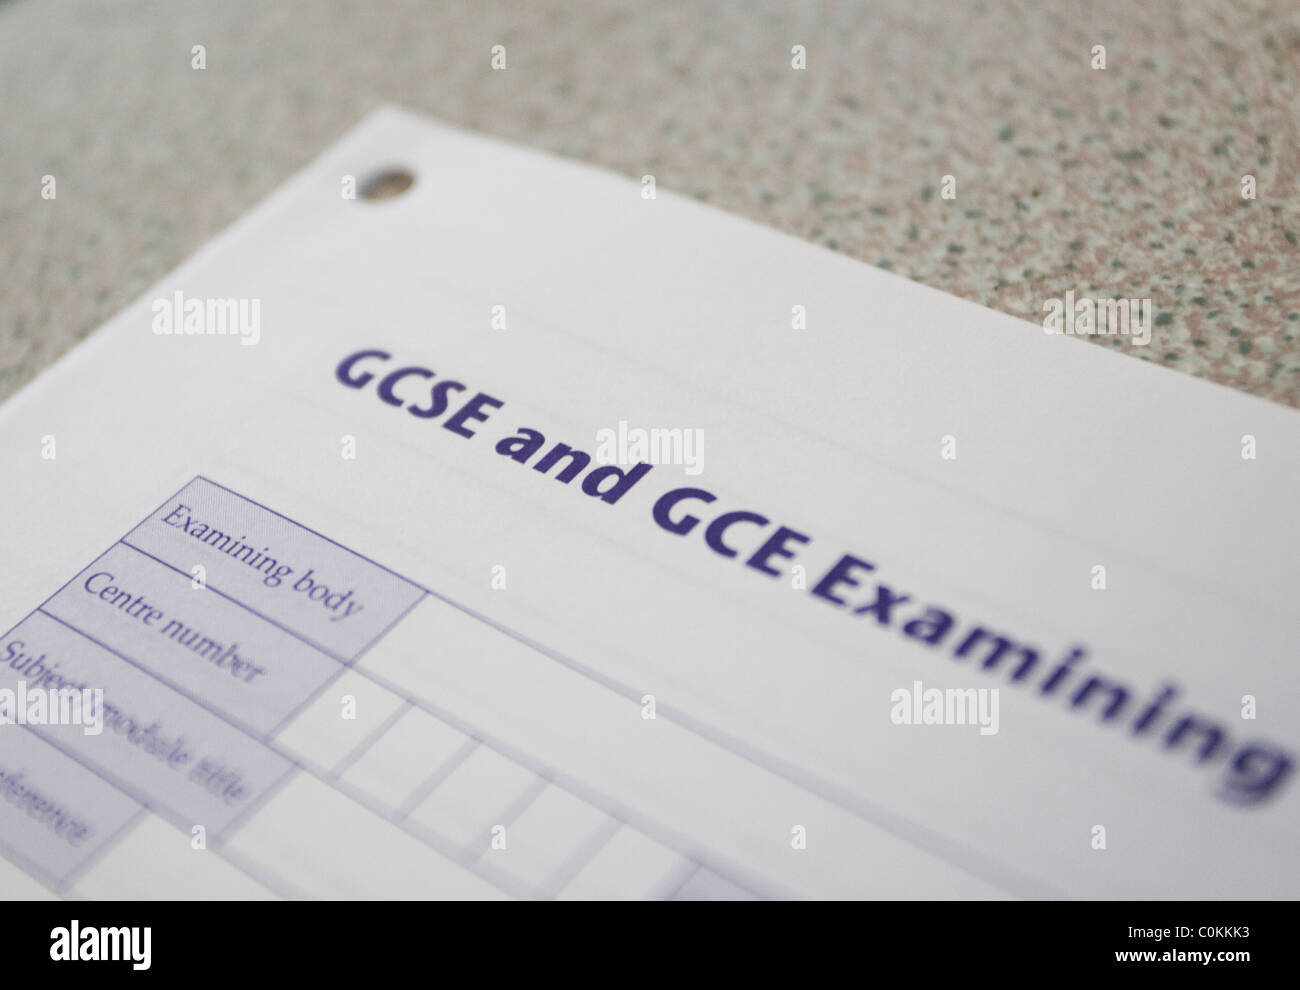 A GCSE and GCE examination paper in Maidstone, Kent, U.K. - Stock Image